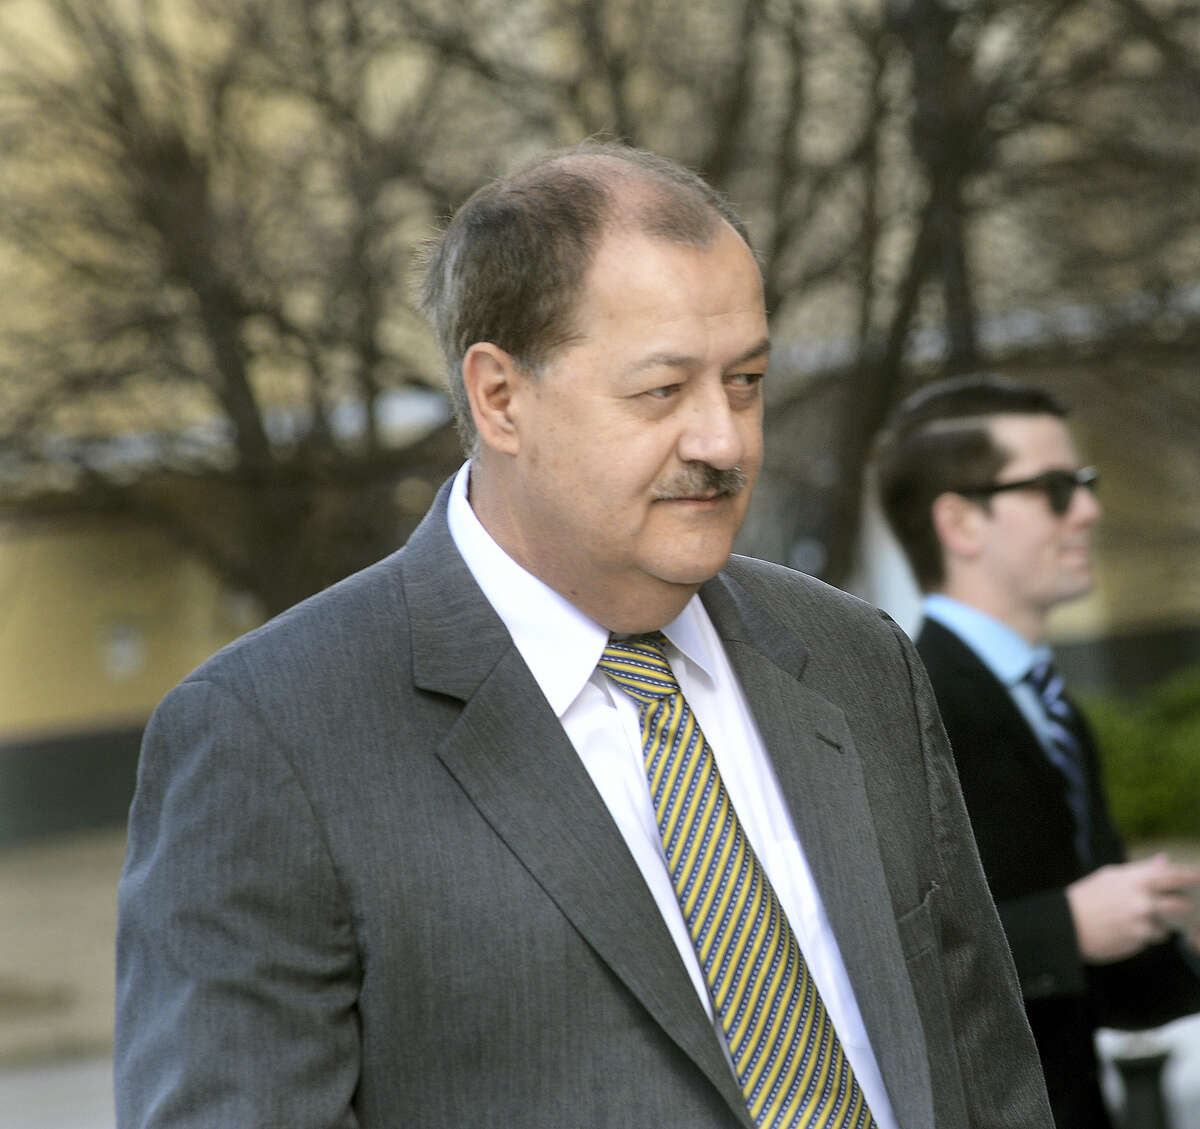 In an April 6, 2016 photo, former Massey CEO Don Blankenship is escorted by Homeland Security officers from the Robert C. Byrd U.S. Courthouse in Charleston, W.Va. Blankenship, who was sentenced to a year in jail and a $250,000 fine for his role in the Upper Big Branch Mine explosion, has declared himself an 'American political prisoner' on his blog, blaming others for the 2010 mine explosion that killed 29 men and led to the former West Virginia coal operator's imprisonment.